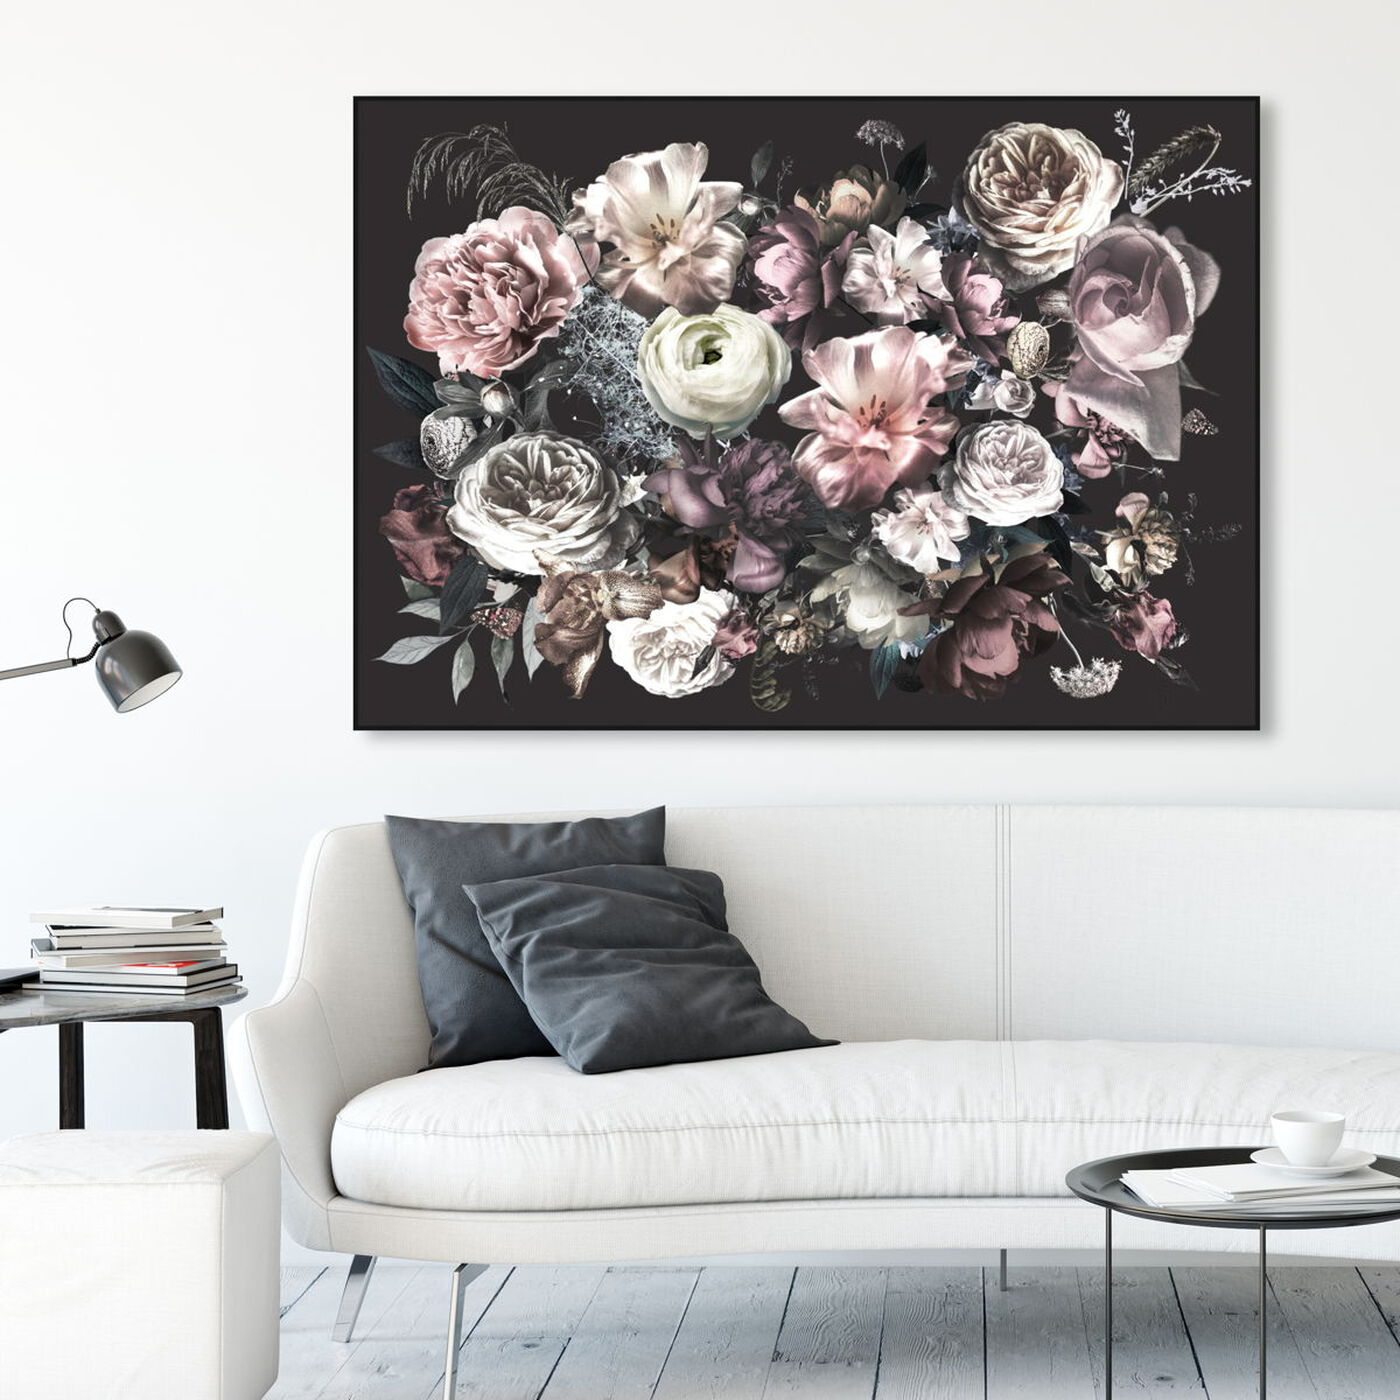 Hanging view of Elizabeth Grace Flowers featuring floral and botanical and florals art.